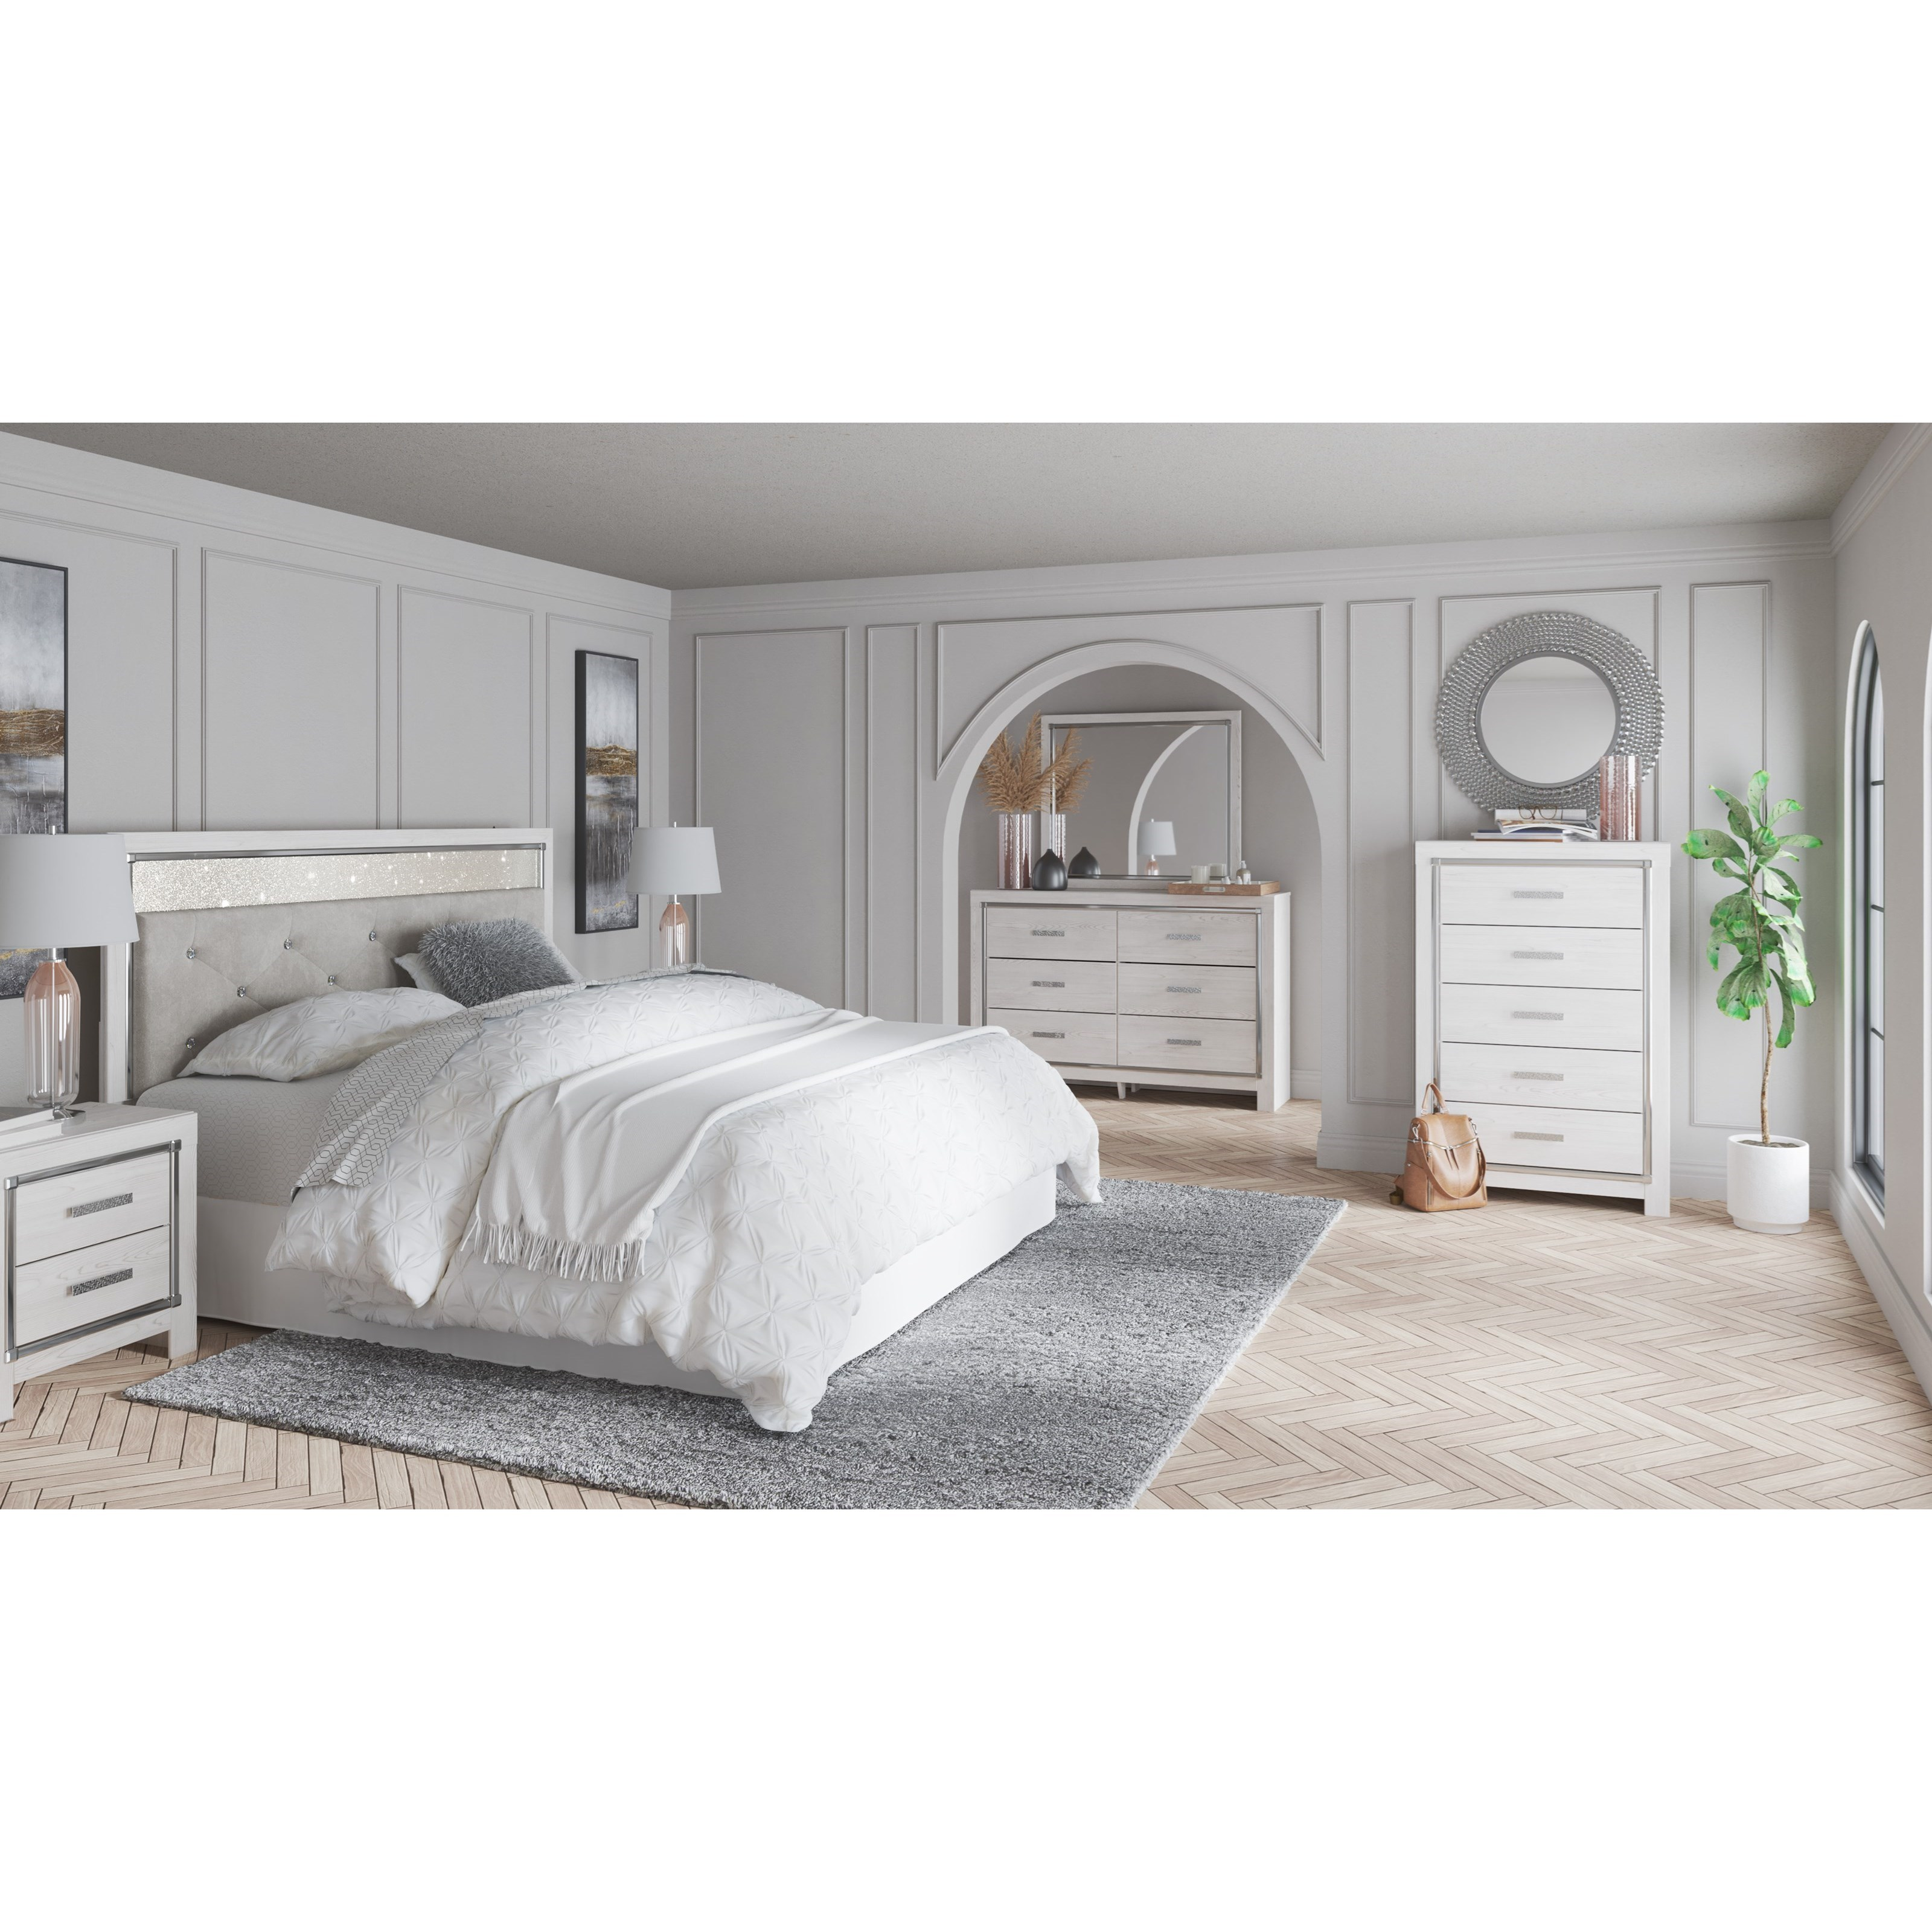 Altyra King Bedroom Group by Signature Design by Ashley at Sparks HomeStore